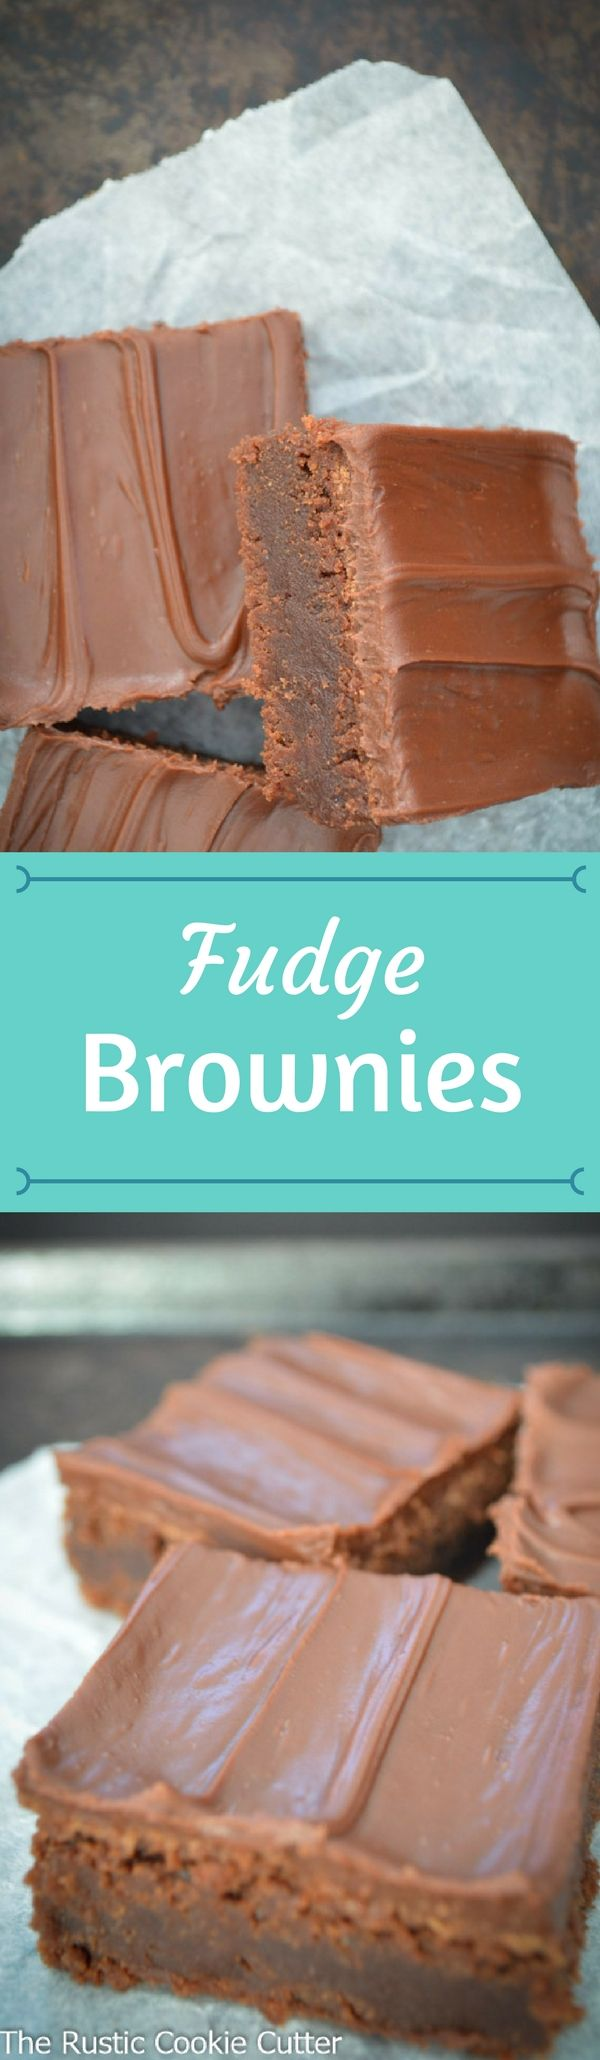 They are the best brownies ever though!  I'm serious!  If you like fudgy, chewy, rich brownies, you have got to try these!  You won't regret it!